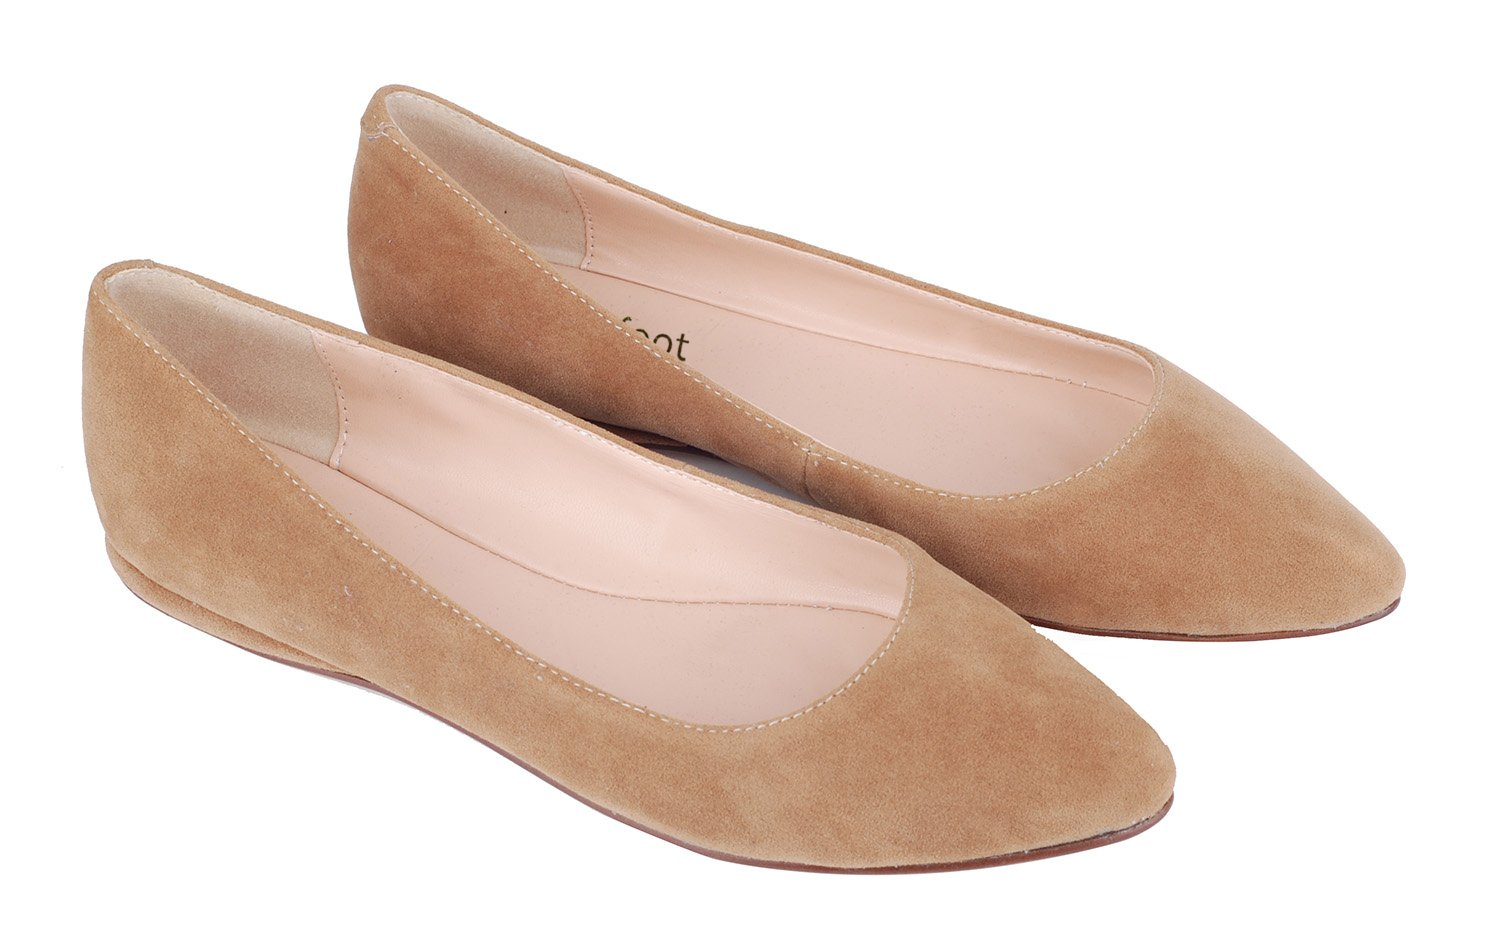 queenfoot Women's Genuine Suede Leather Pointed Toe Comfortable Ballet Flats Casual Pumps Shoes B01LWY1RZP 6 B(M) US|C-apricot Suede